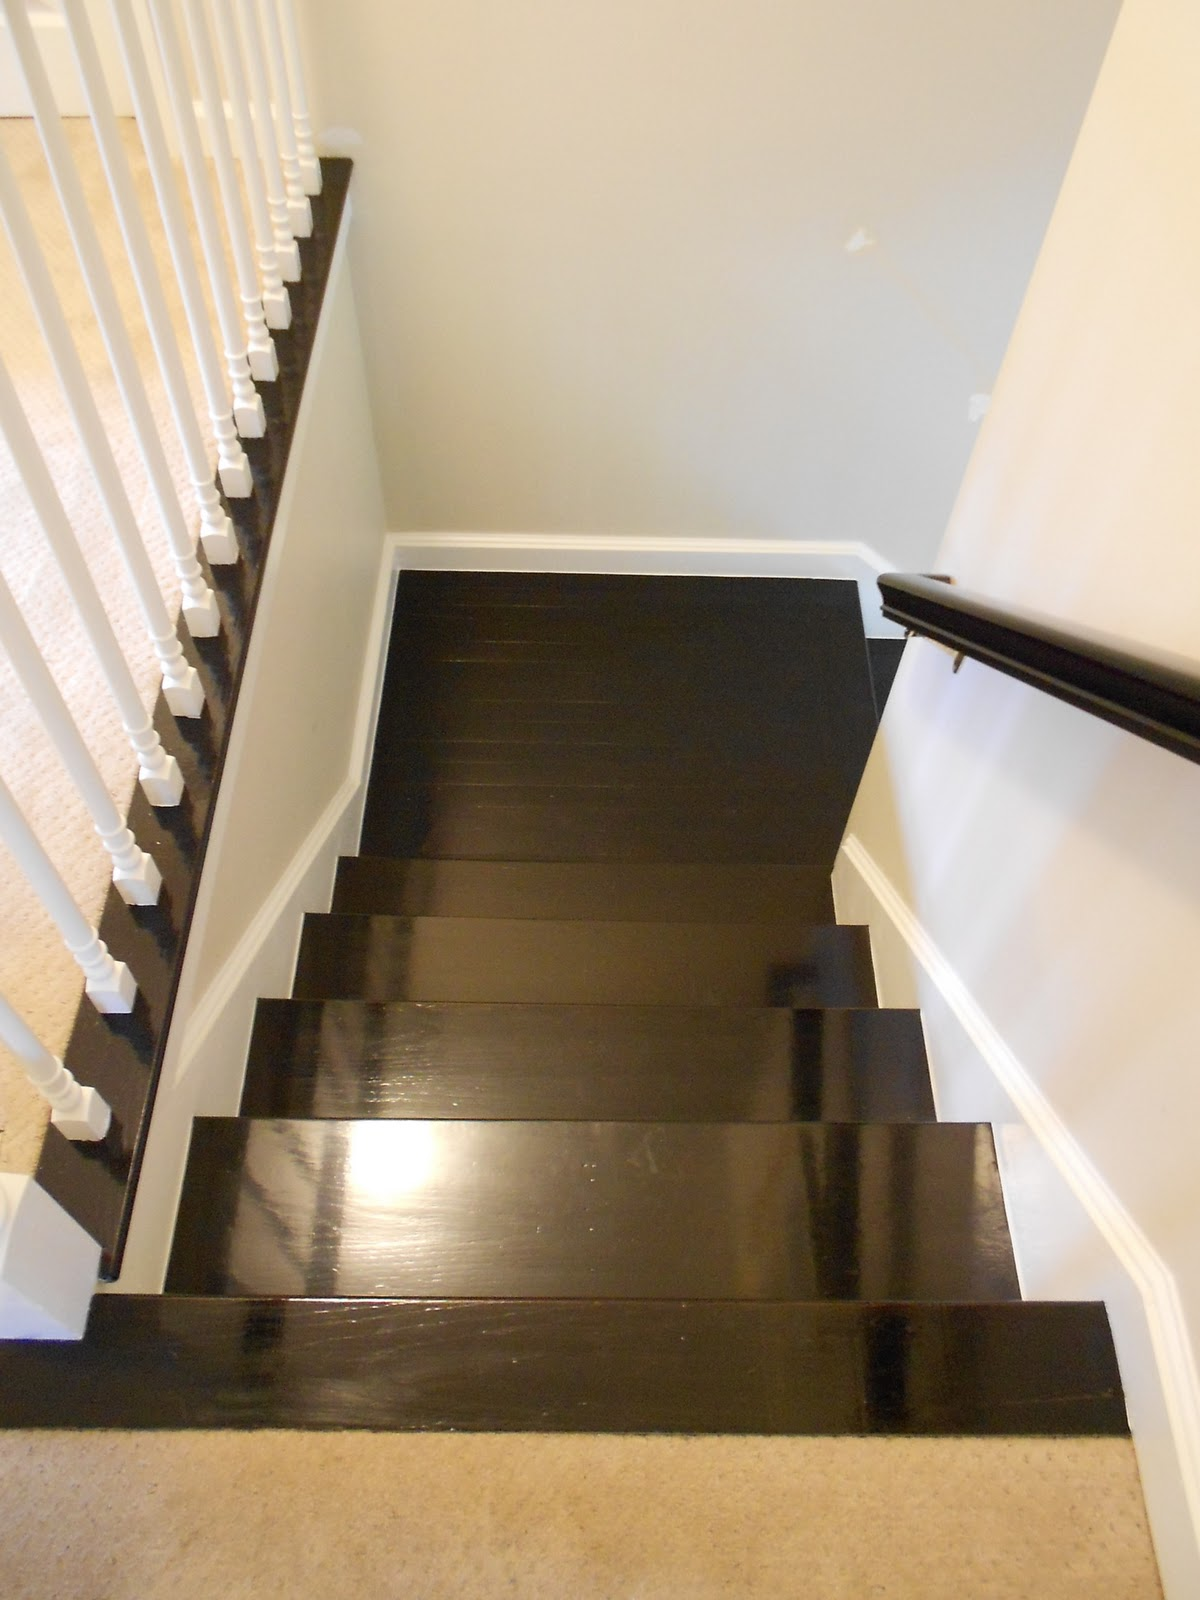 Stairs shine your light Unstained hardwood floors